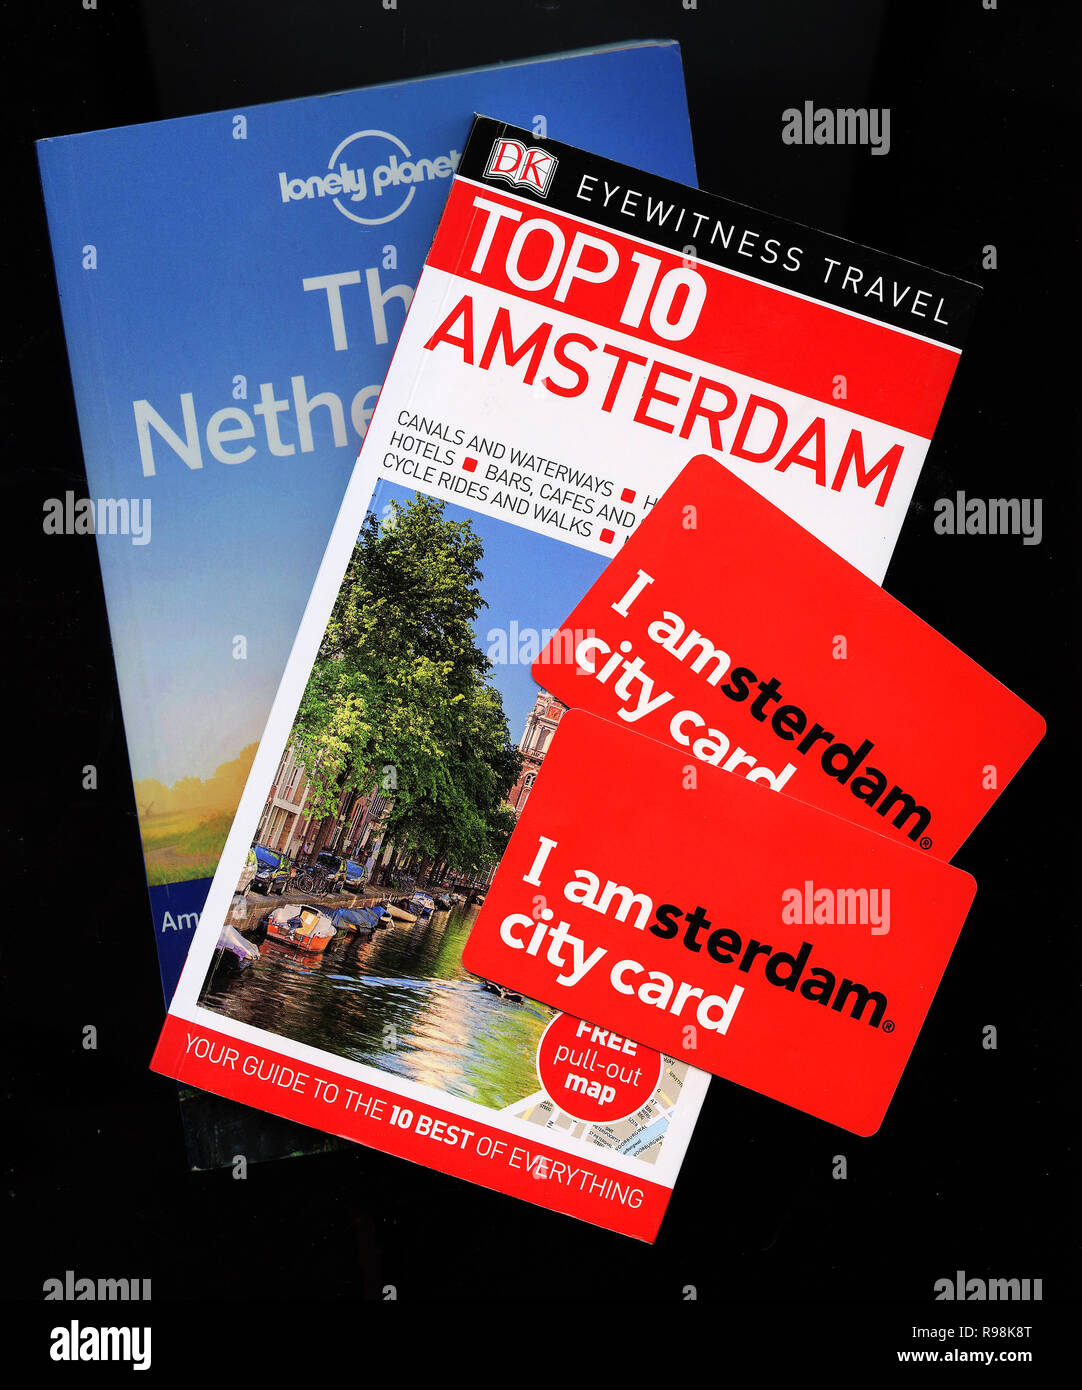 Lonely Planet, Eyewitness Travel Top 10 for Amsterdam, Holland, Netherlands together with I amsterdam cards Stock Photo